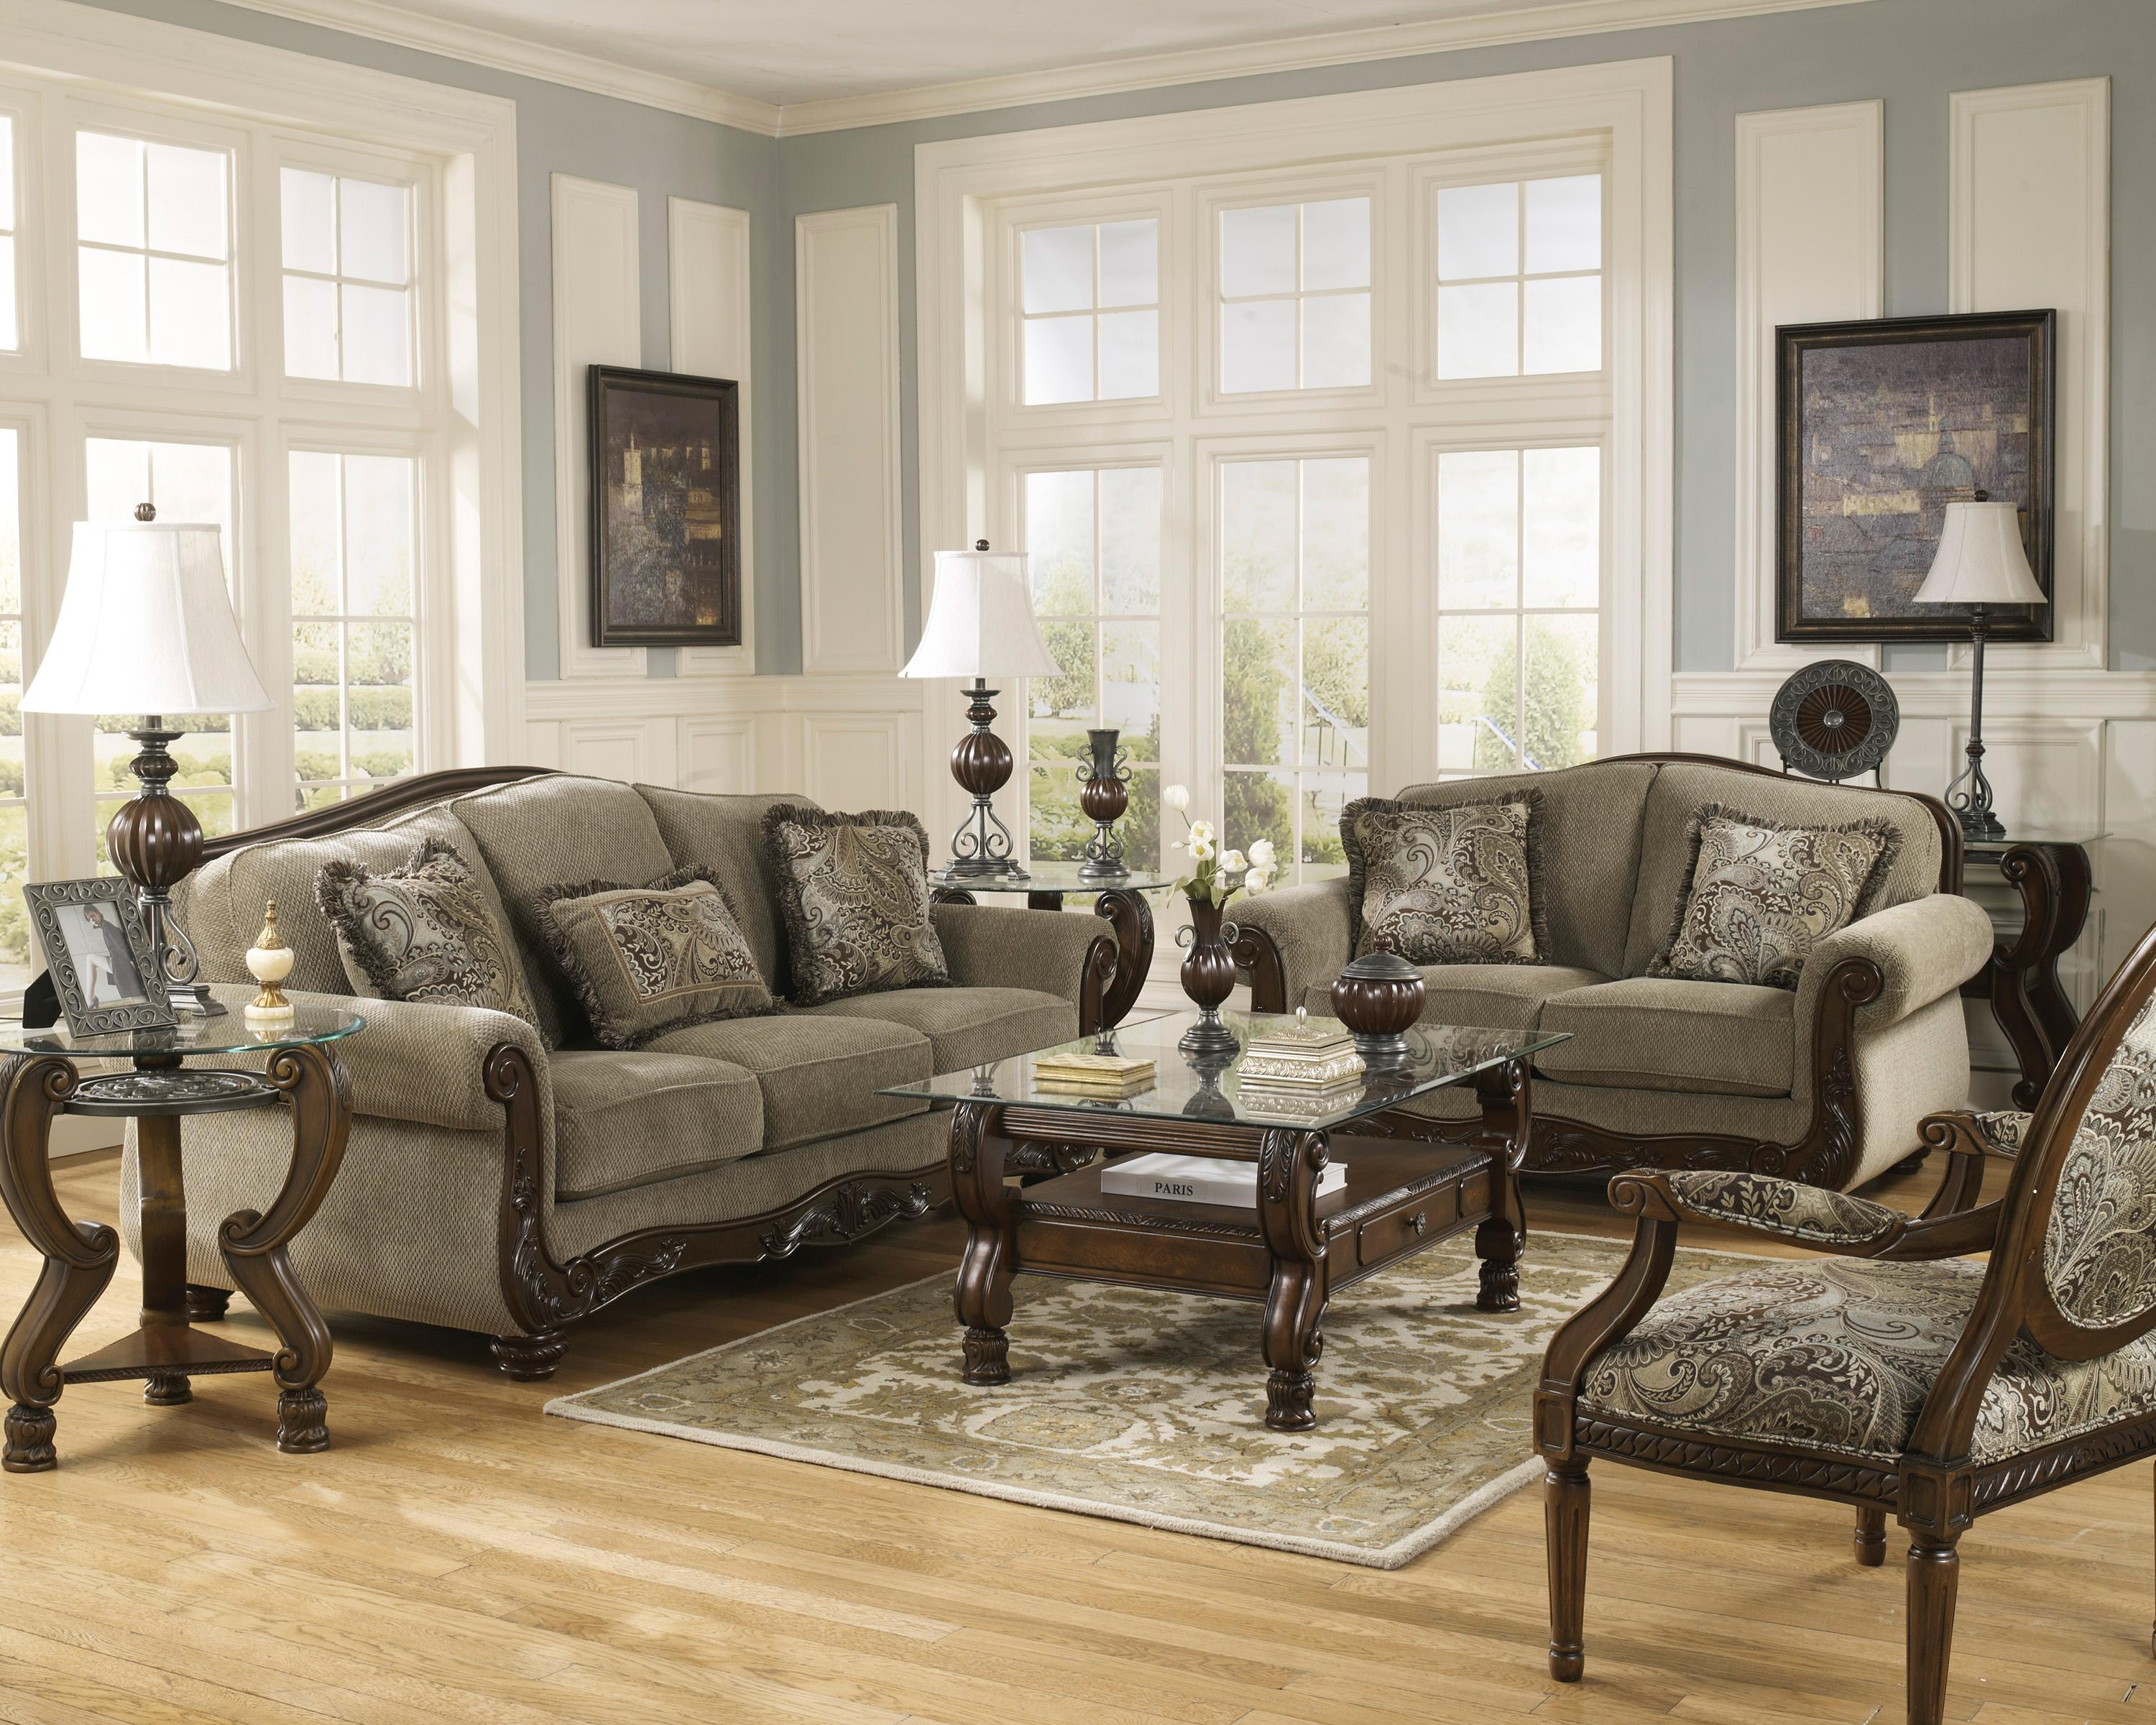 Signature Design by Ashley Martinsburg - Meadow Stationary Living Room Group - Item Number: 57300 Living Room Group 2